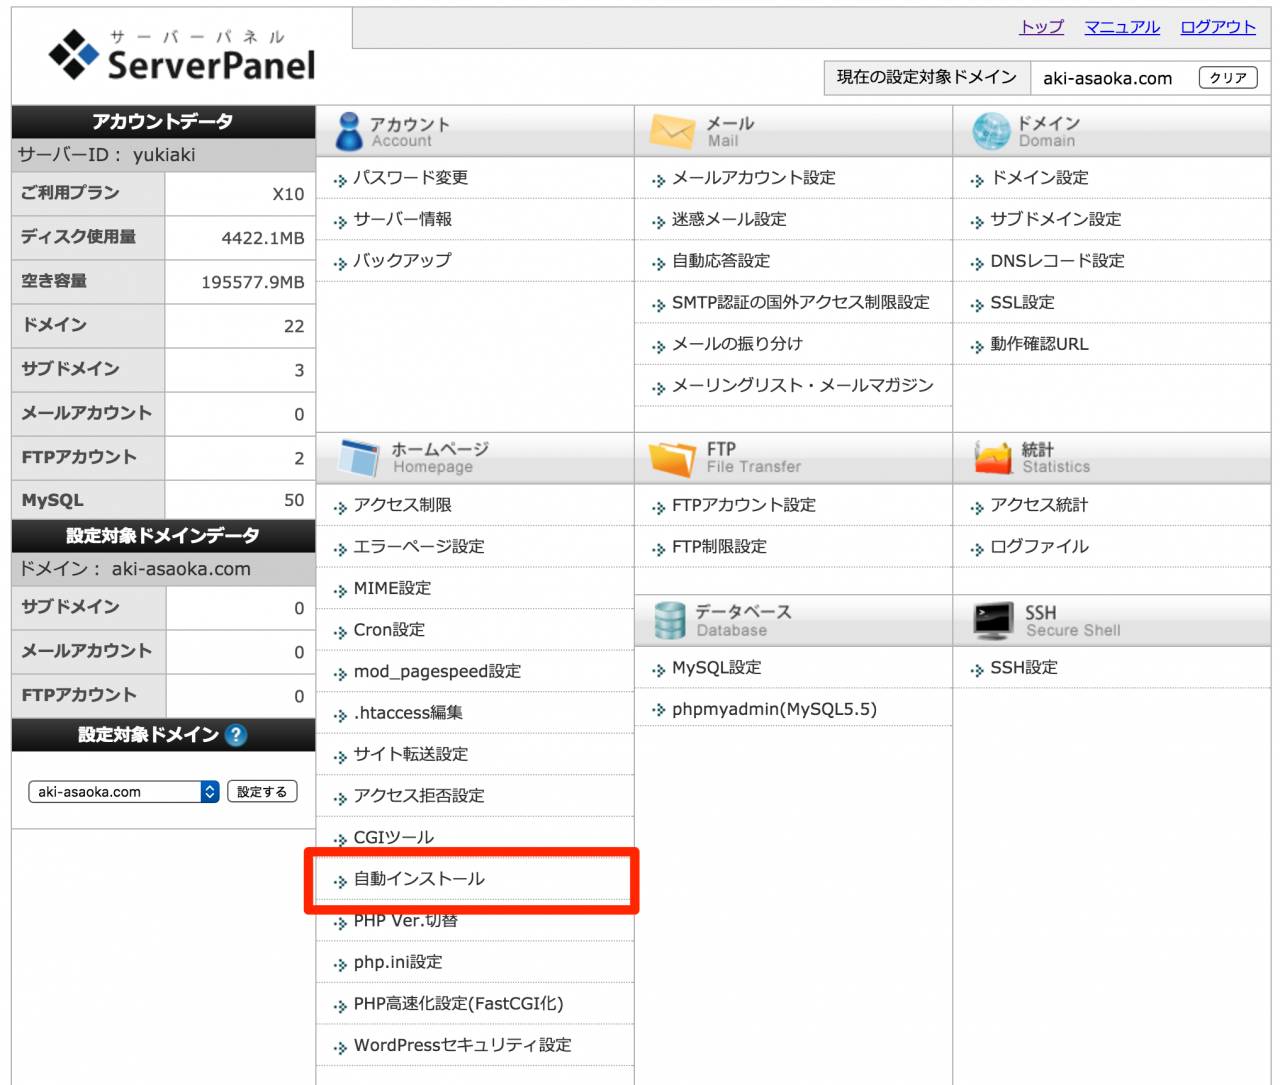 screencapture-secure-xserver-ne-jp-xserver-sv1302-1477180284030